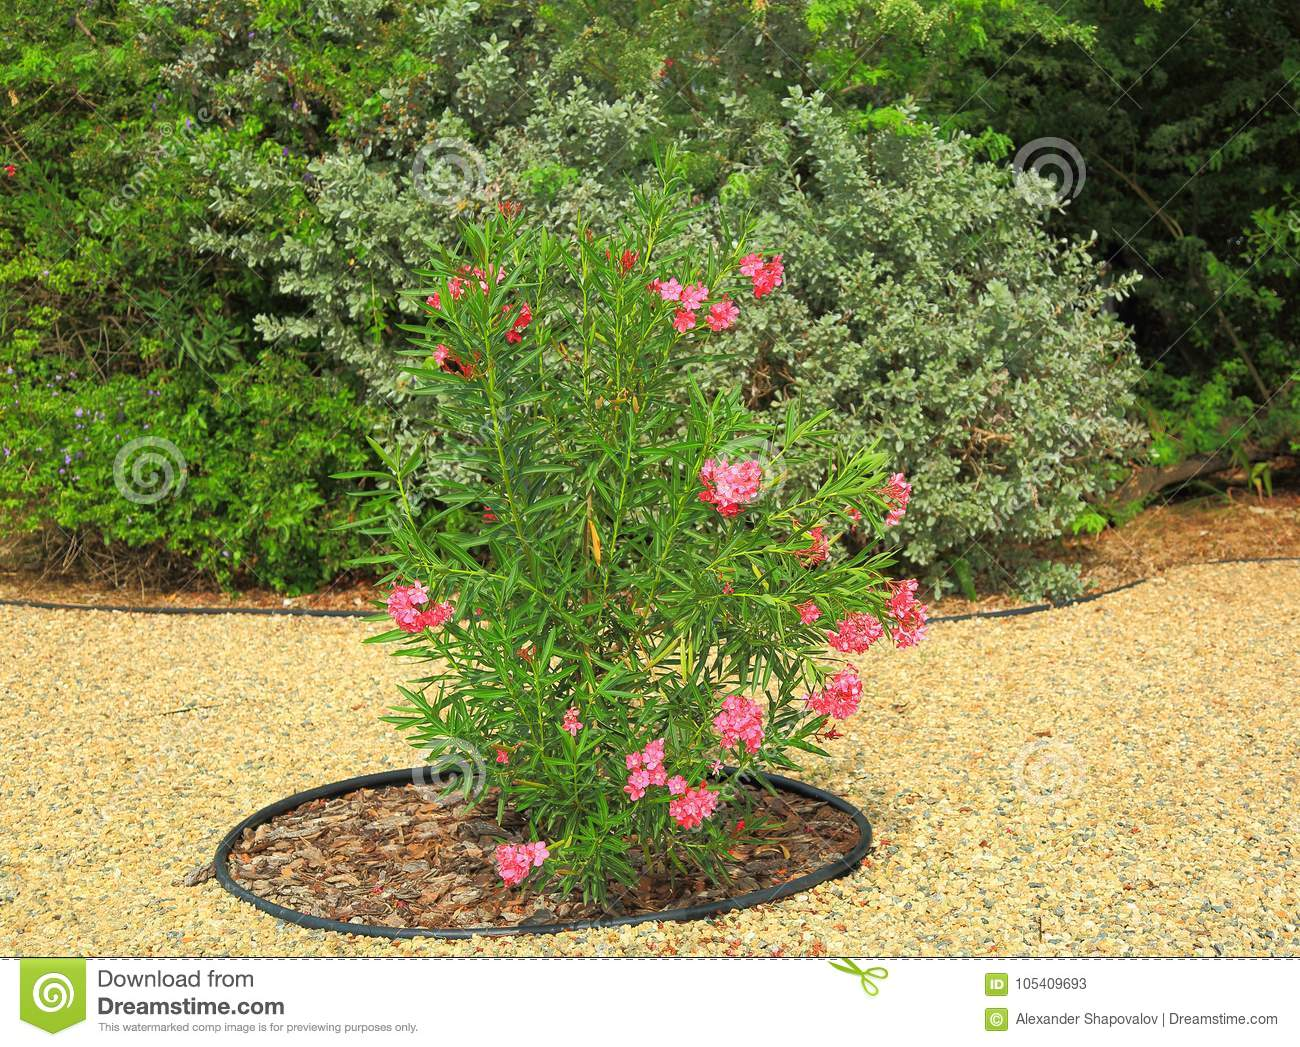 Captivating Lovely Green Plant With Pink Flowers. Nice Garden Design.